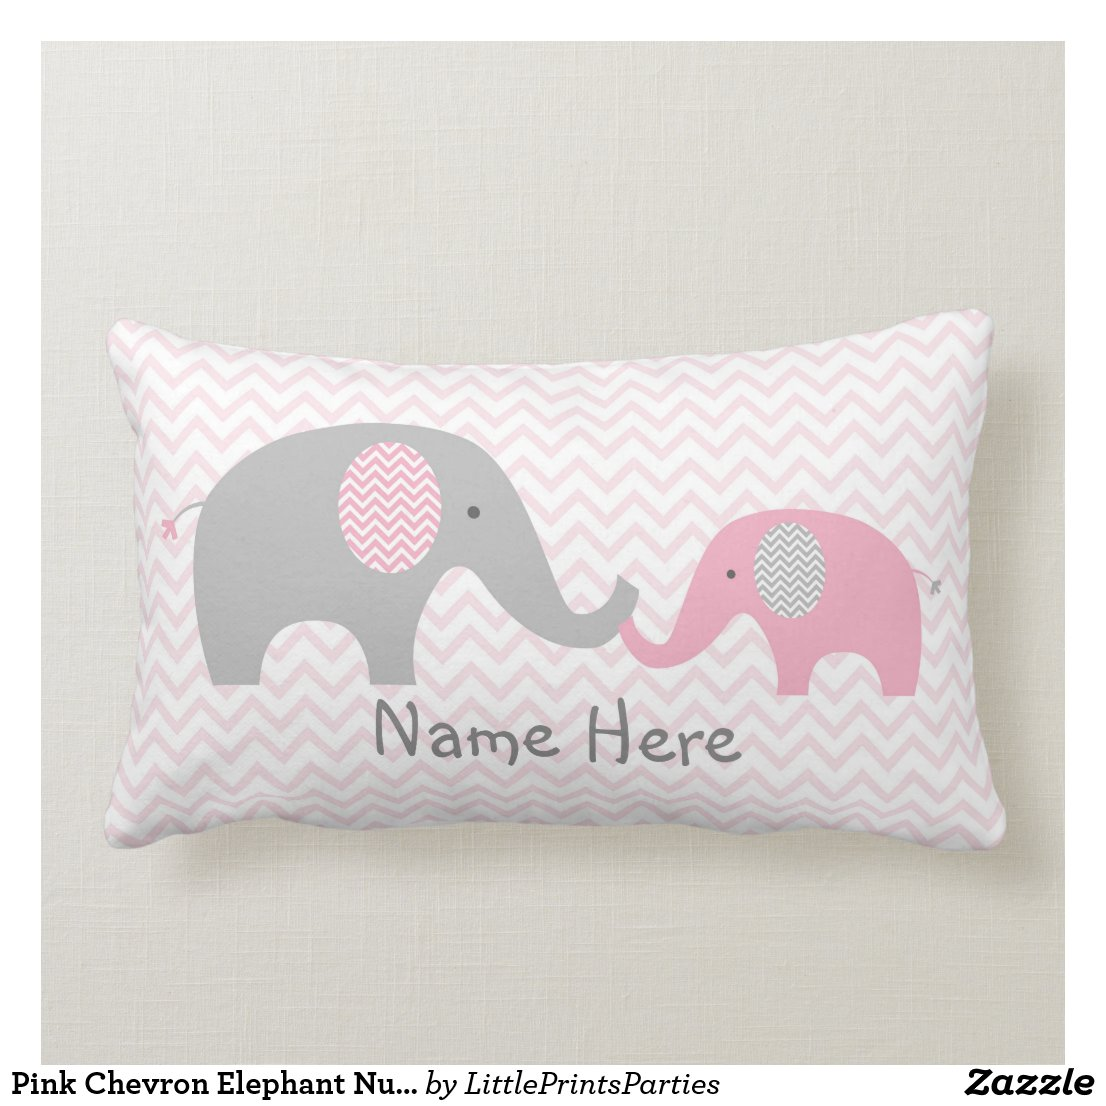 Pink Chevron Elephant Nursery Lumbar Cushion